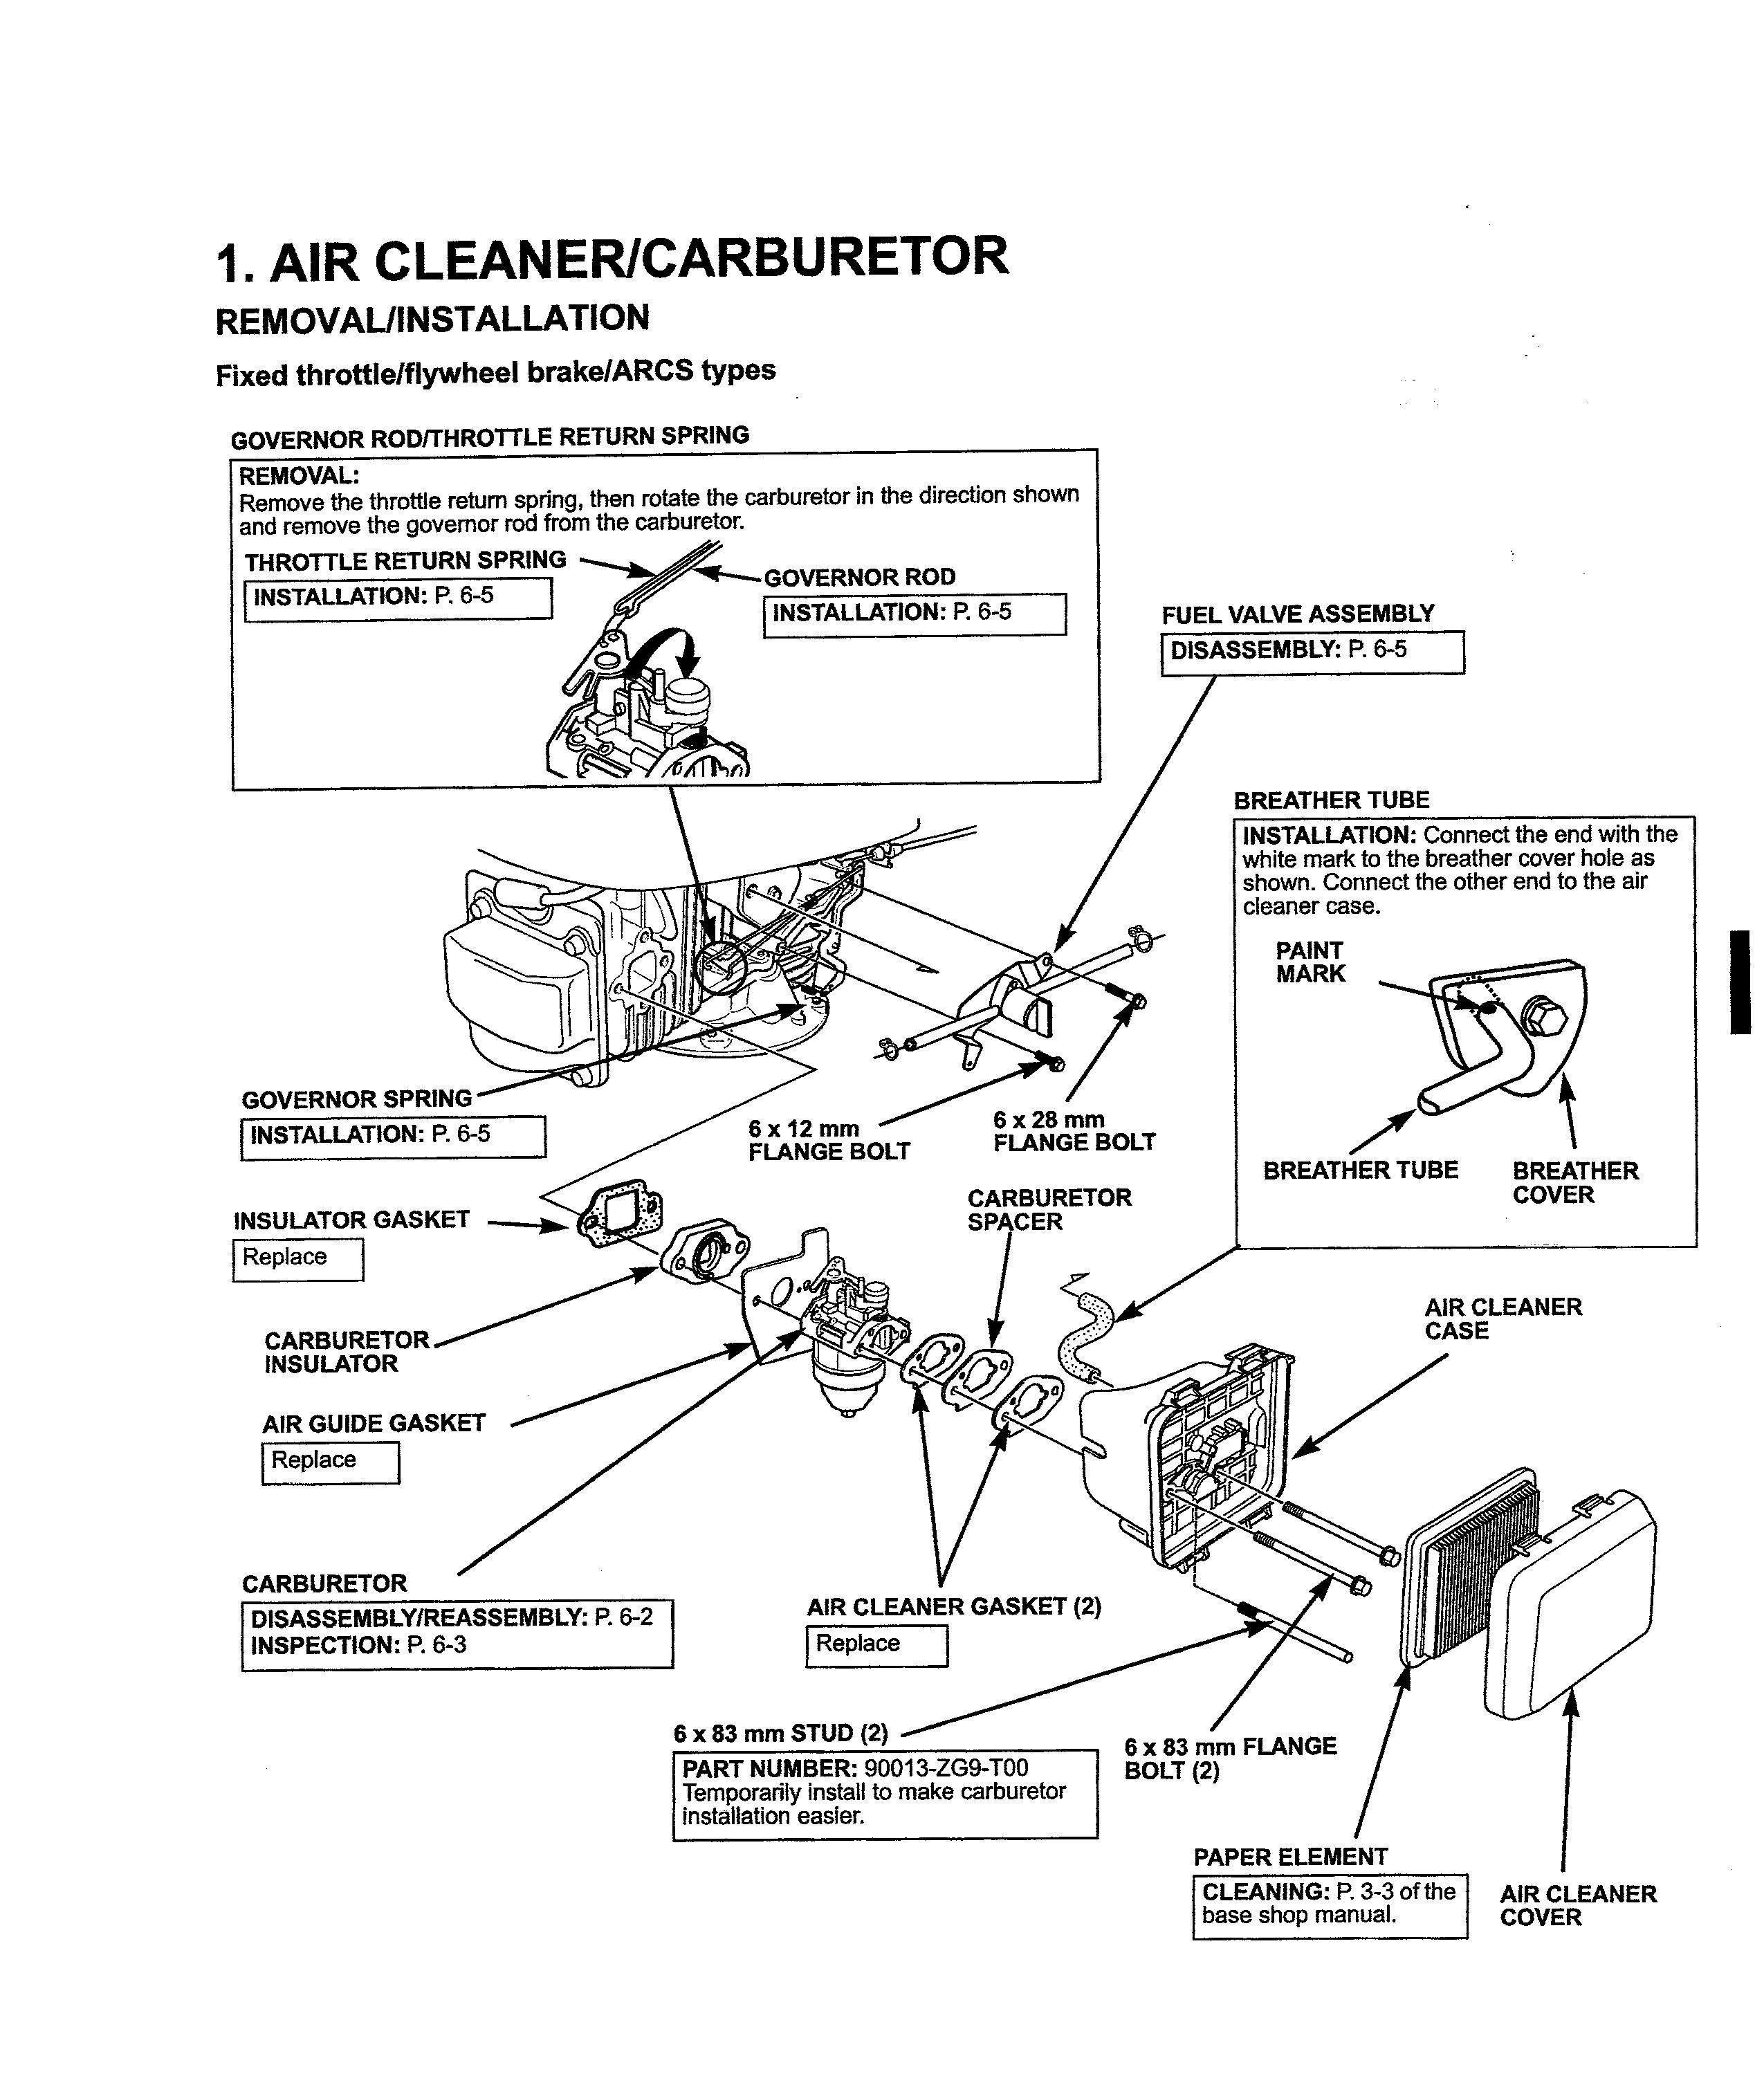 Honda Gcv160 Engine Diagram Manual for Honda 160cc Engine On Troy Bilt 11a542q711 Lawn Mower Of Honda Gcv160 Engine Diagram